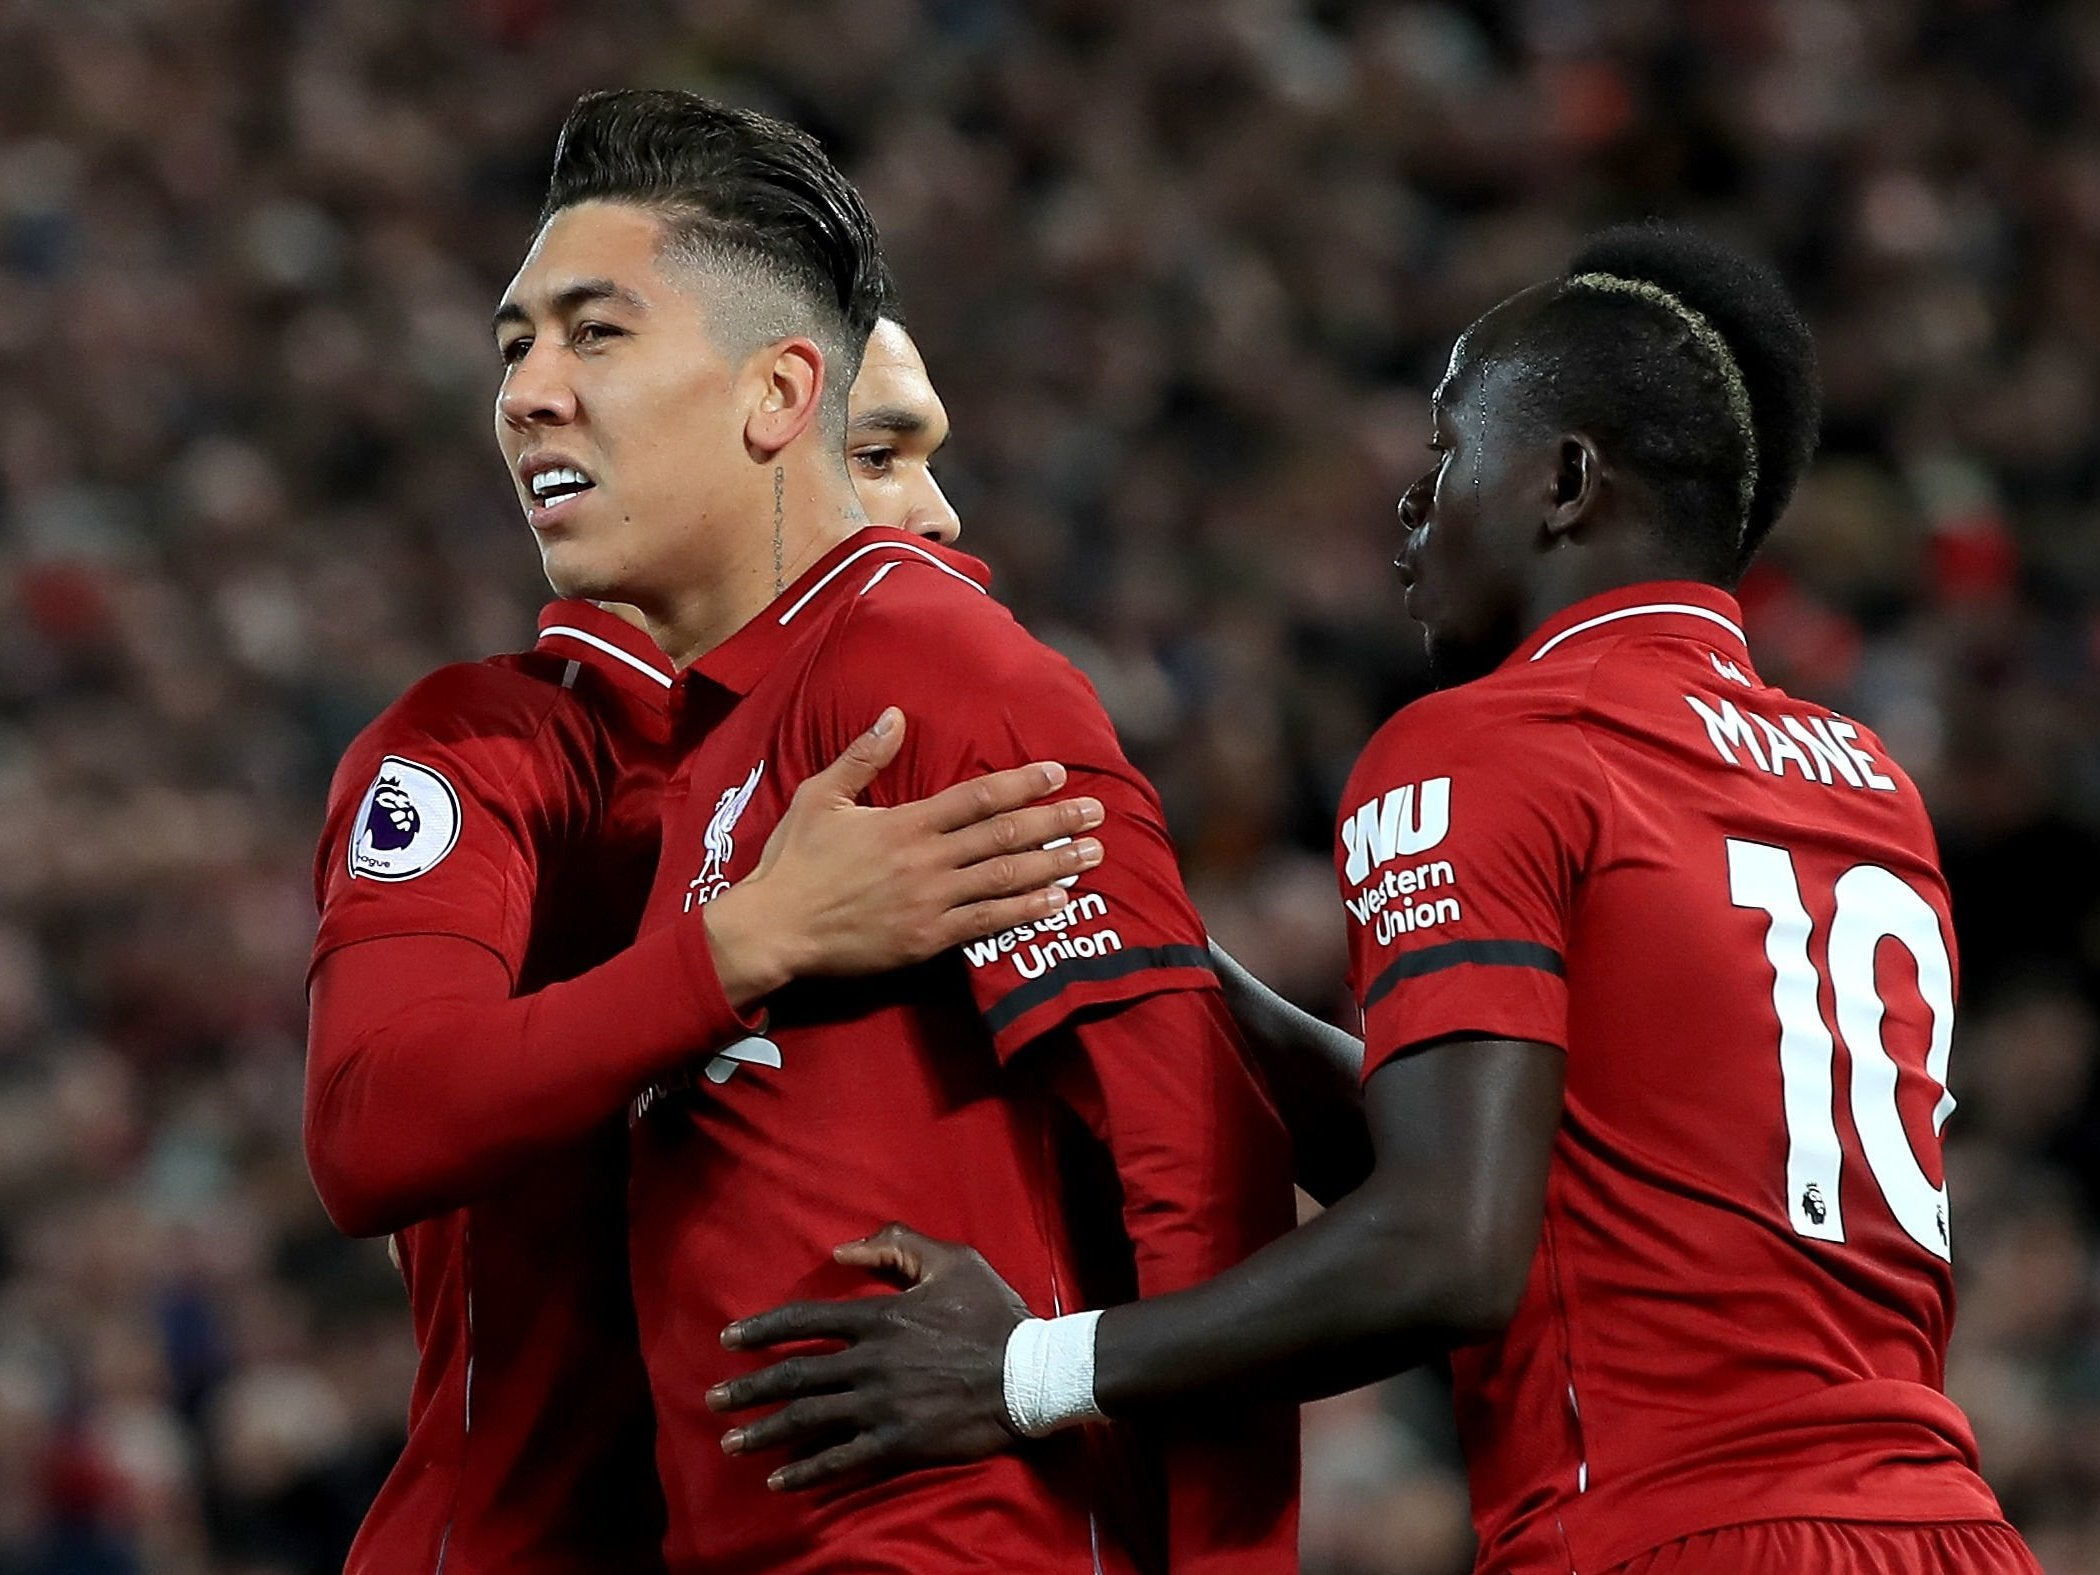 Liverpool Vs Arsenal Jurgen Klopp S Side Extend Premier League Lead With Emphatic Victory The Independent The Independent